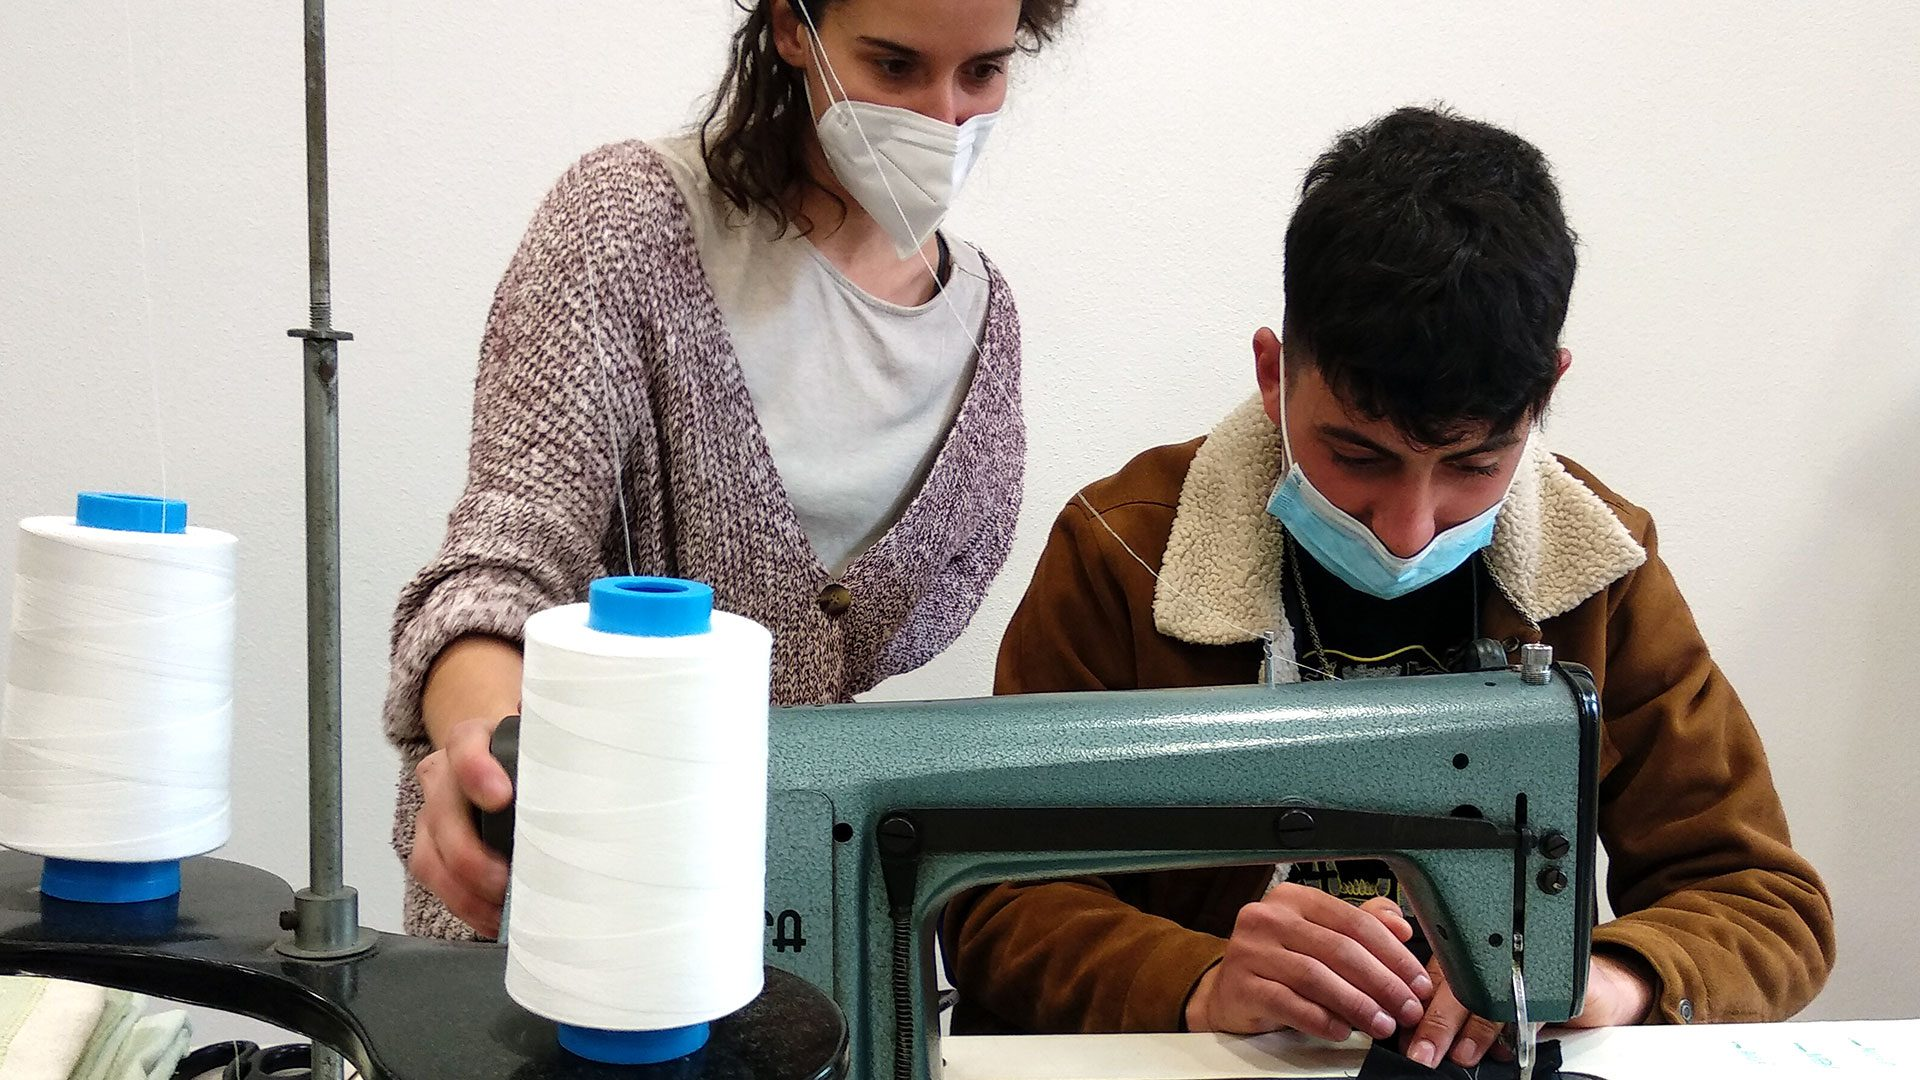 The image shows how the female instructor Carlota Rodriguez is guiding a participant of the Faberlull Residence with the sewing machine